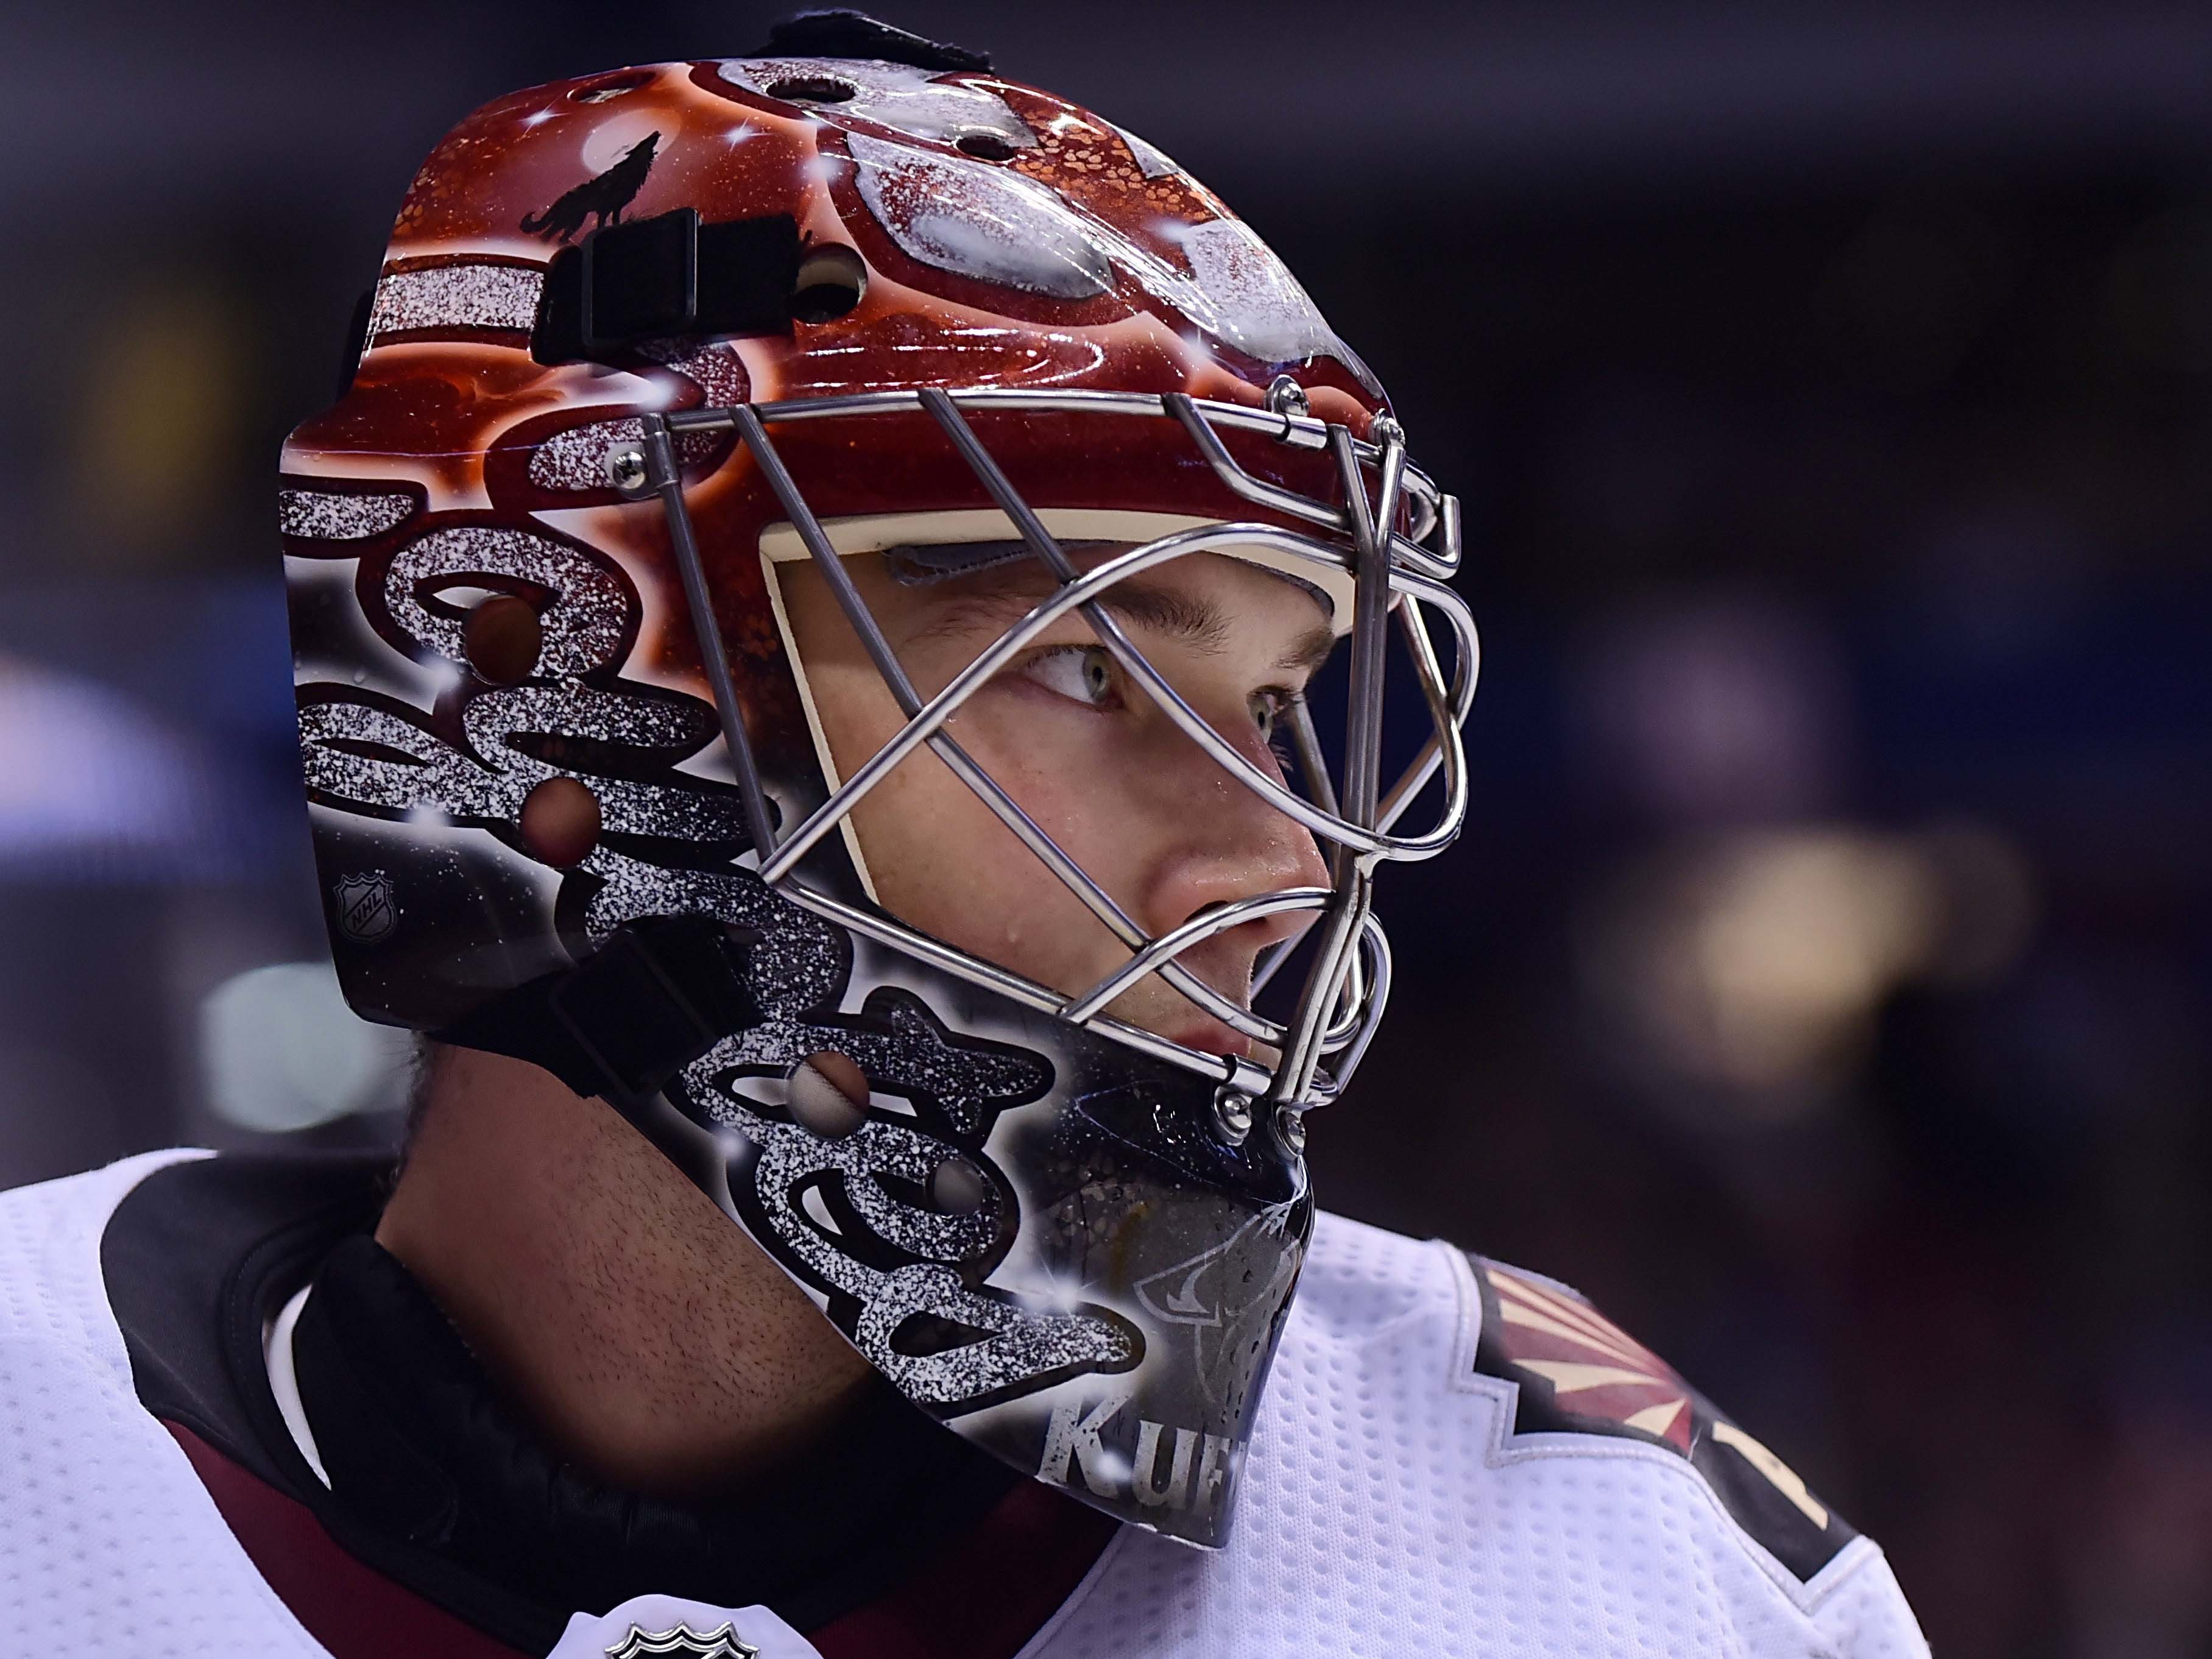 Jan 10, 2019; Vancouver, British Columbia, CAN; Arizona Coyotes goaltender Darcy Kuemper (35) awaits the start of play against the Vancouver Canucks  during the first period at Rogers Arena. Mandatory Credit: Anne-Marie Sorvin-USA TODAY Sports